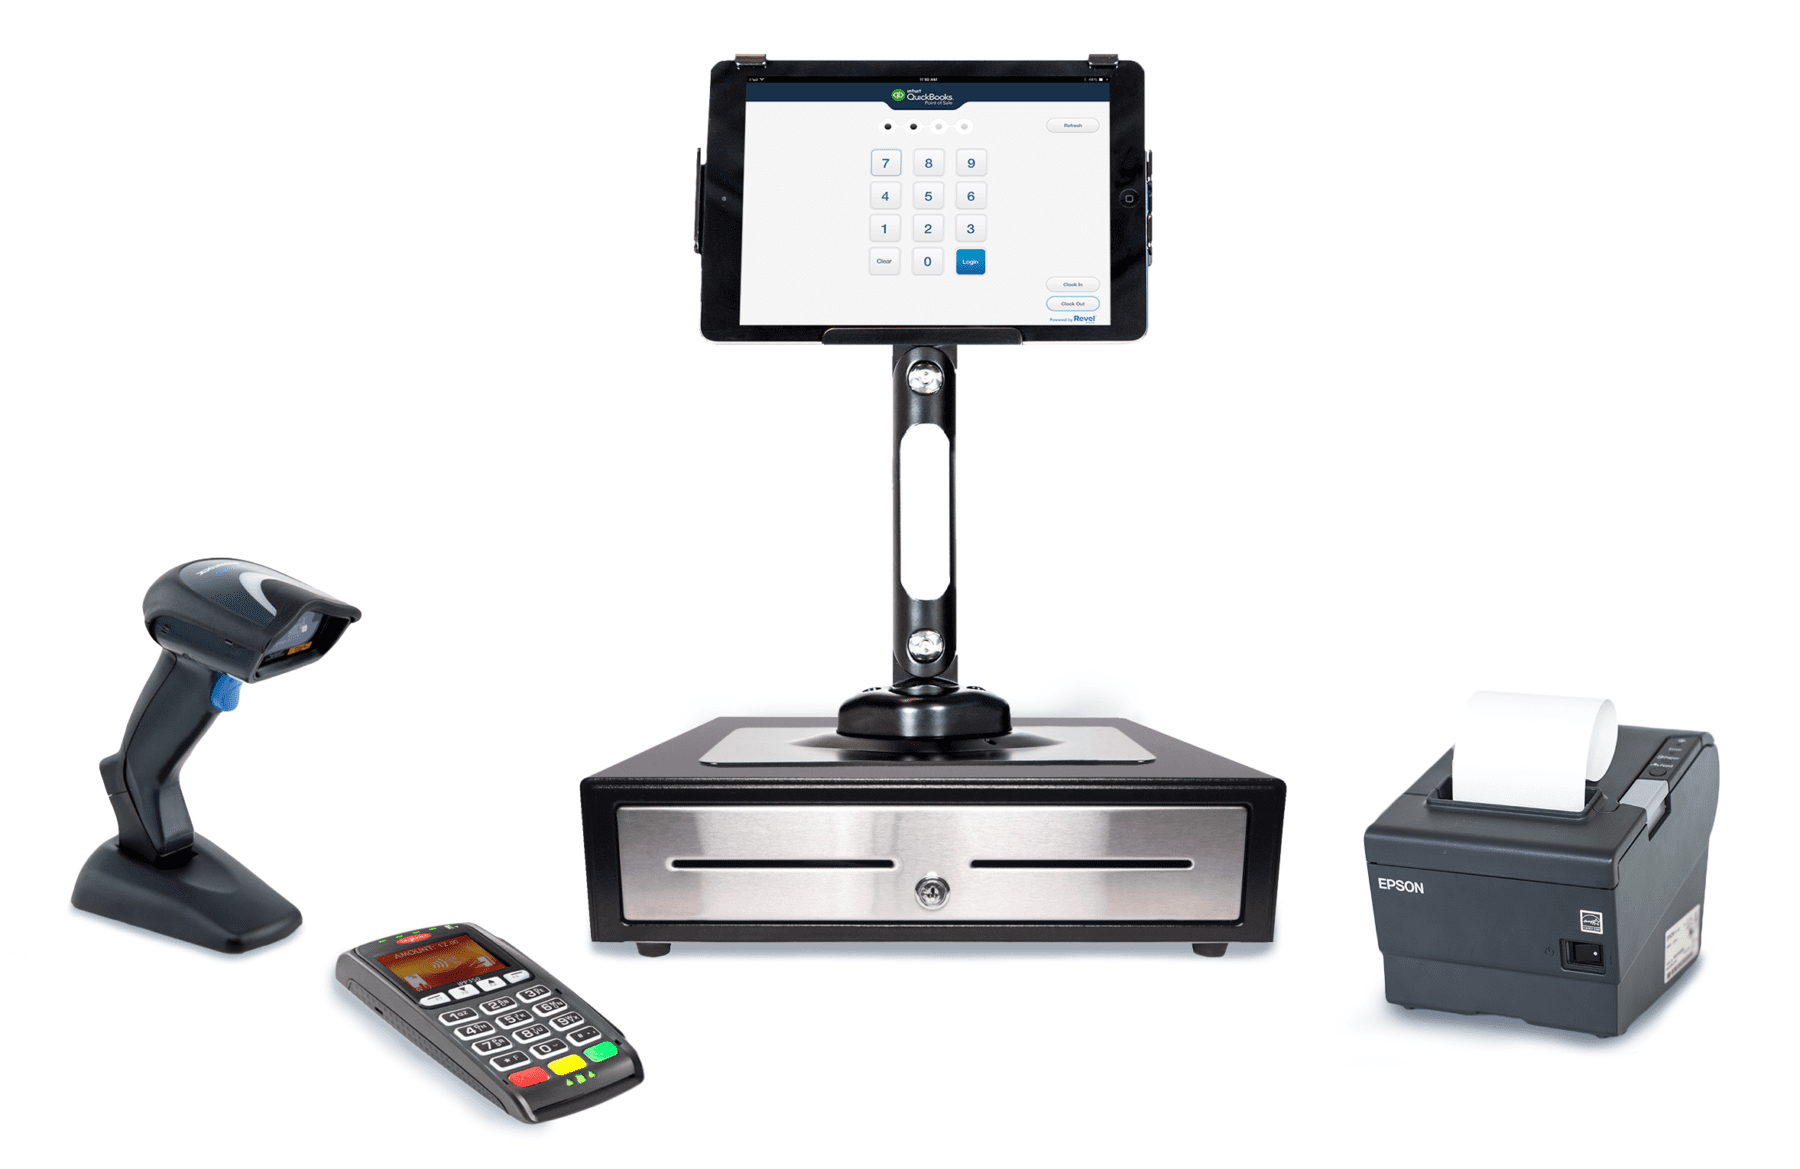 Quickbooks Point Of Sale Pos System Software For Small